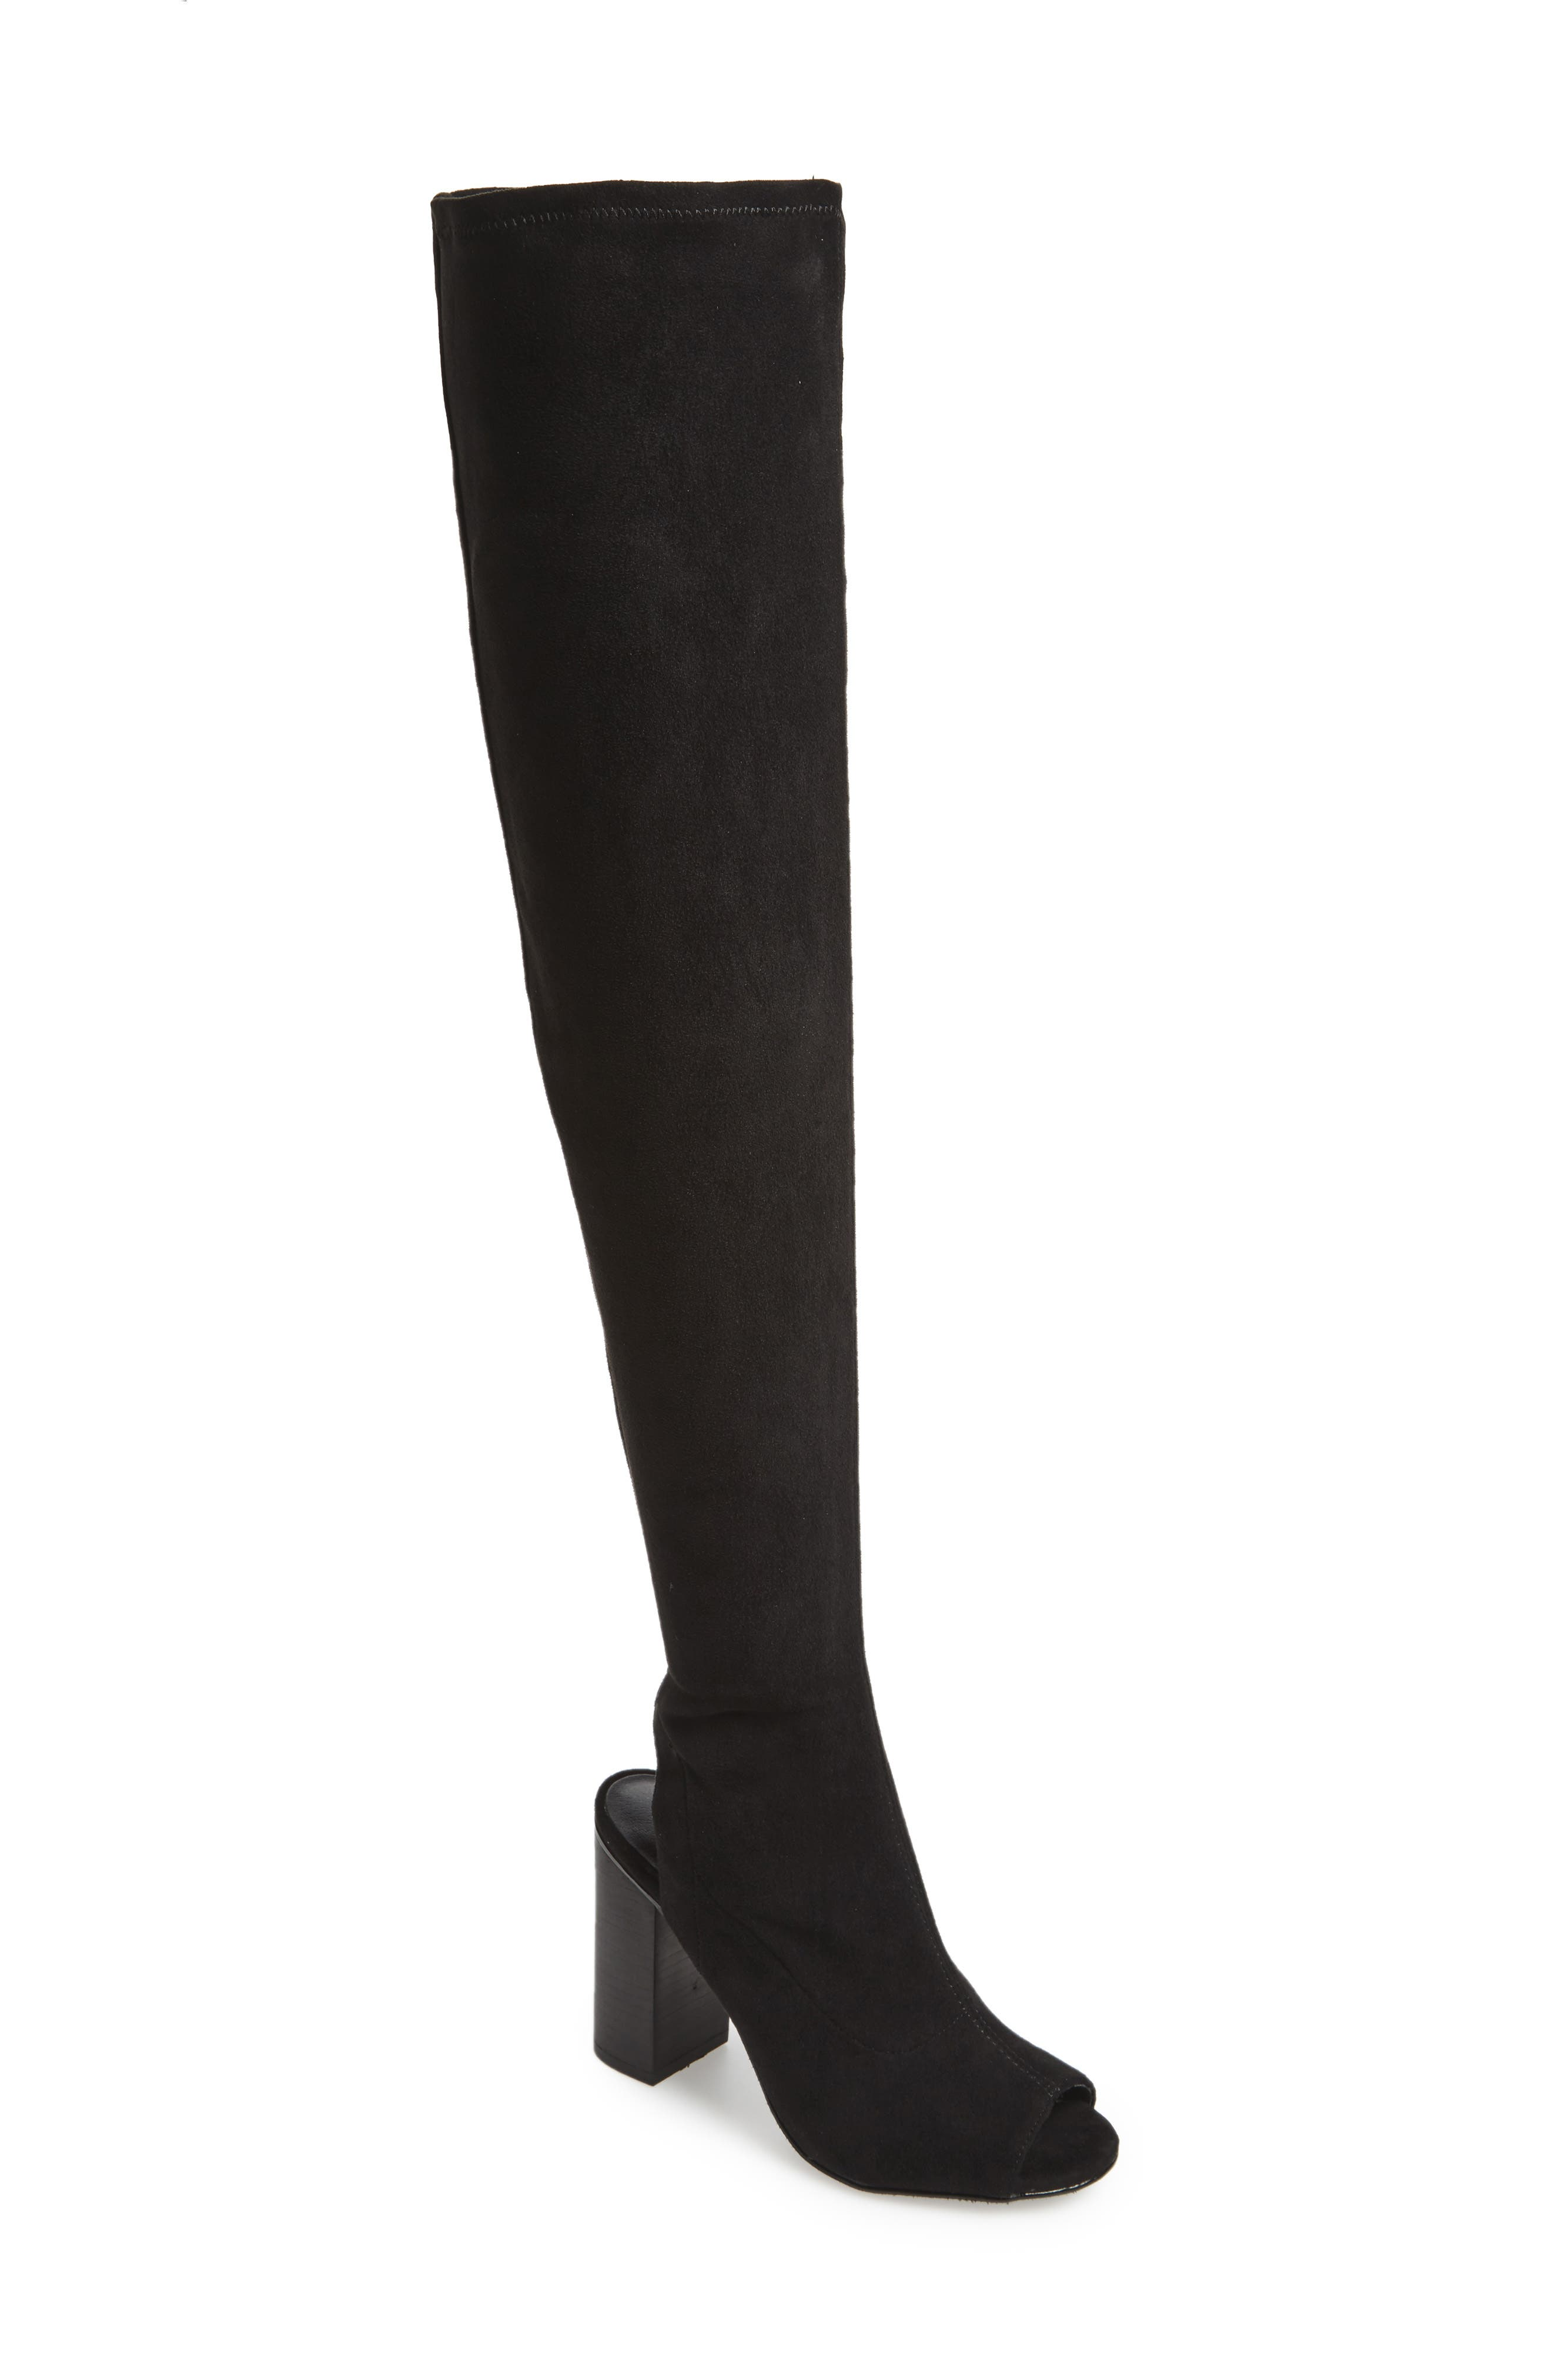 Robyn Cutout Over the Knee Boot,                         Main,                         color,